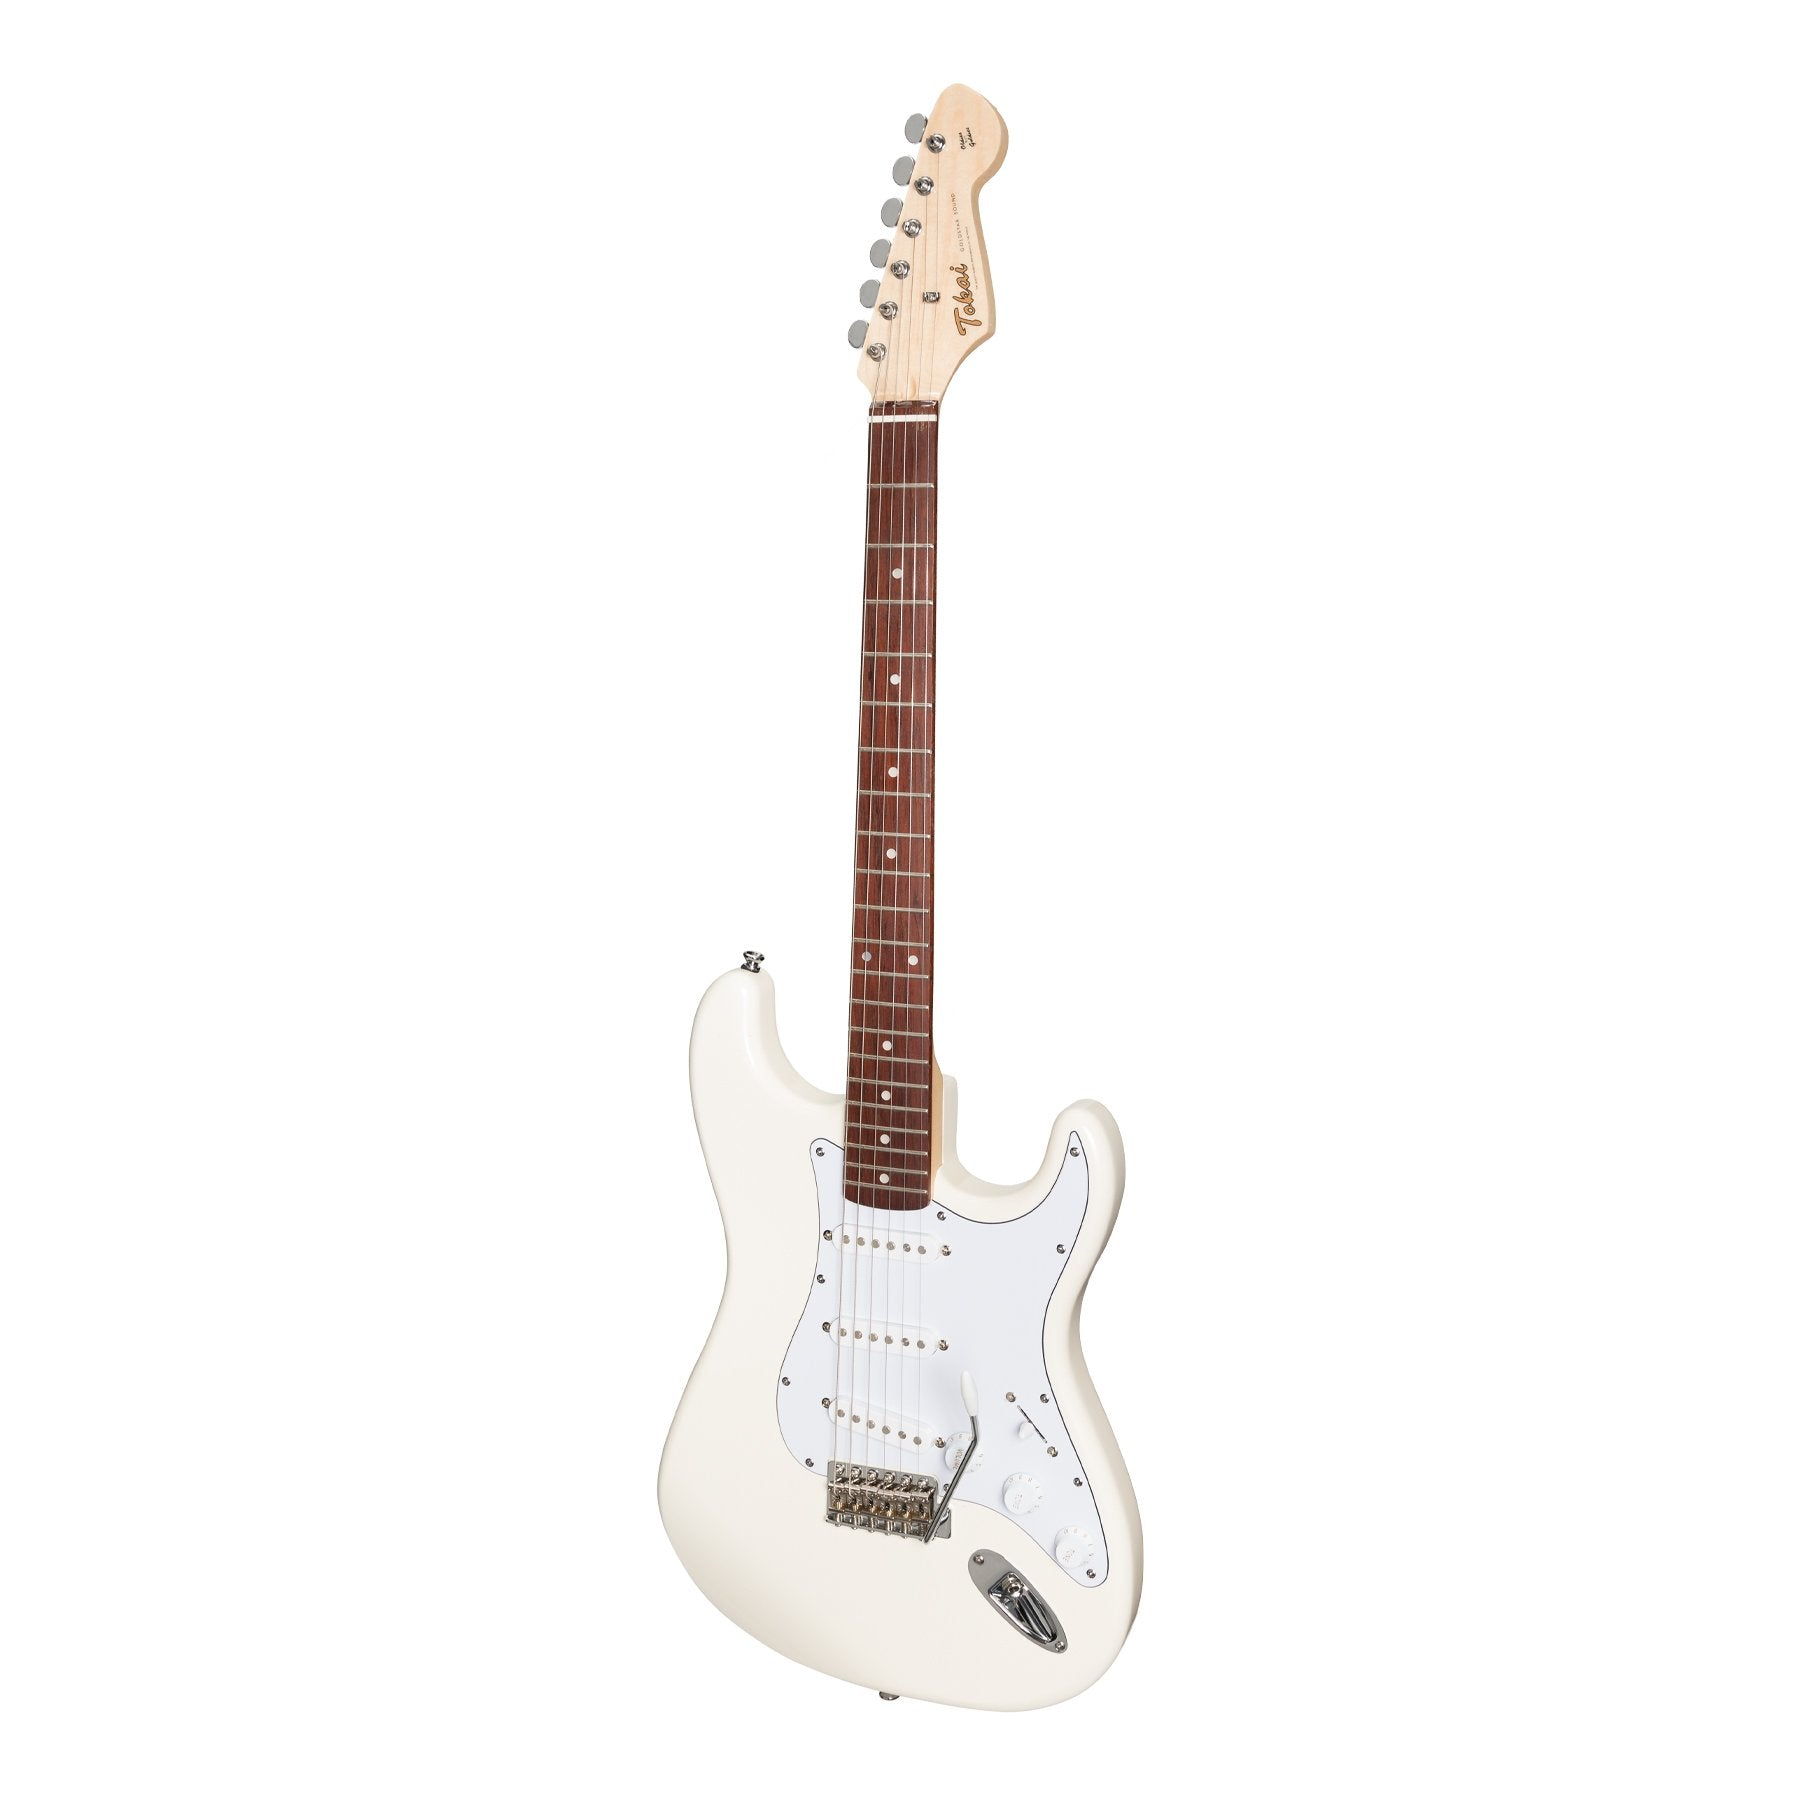 Tokai 'Traditional Series' AST-52 ST-Style Electric Guitar (Vintage White)-AST-52-VWH